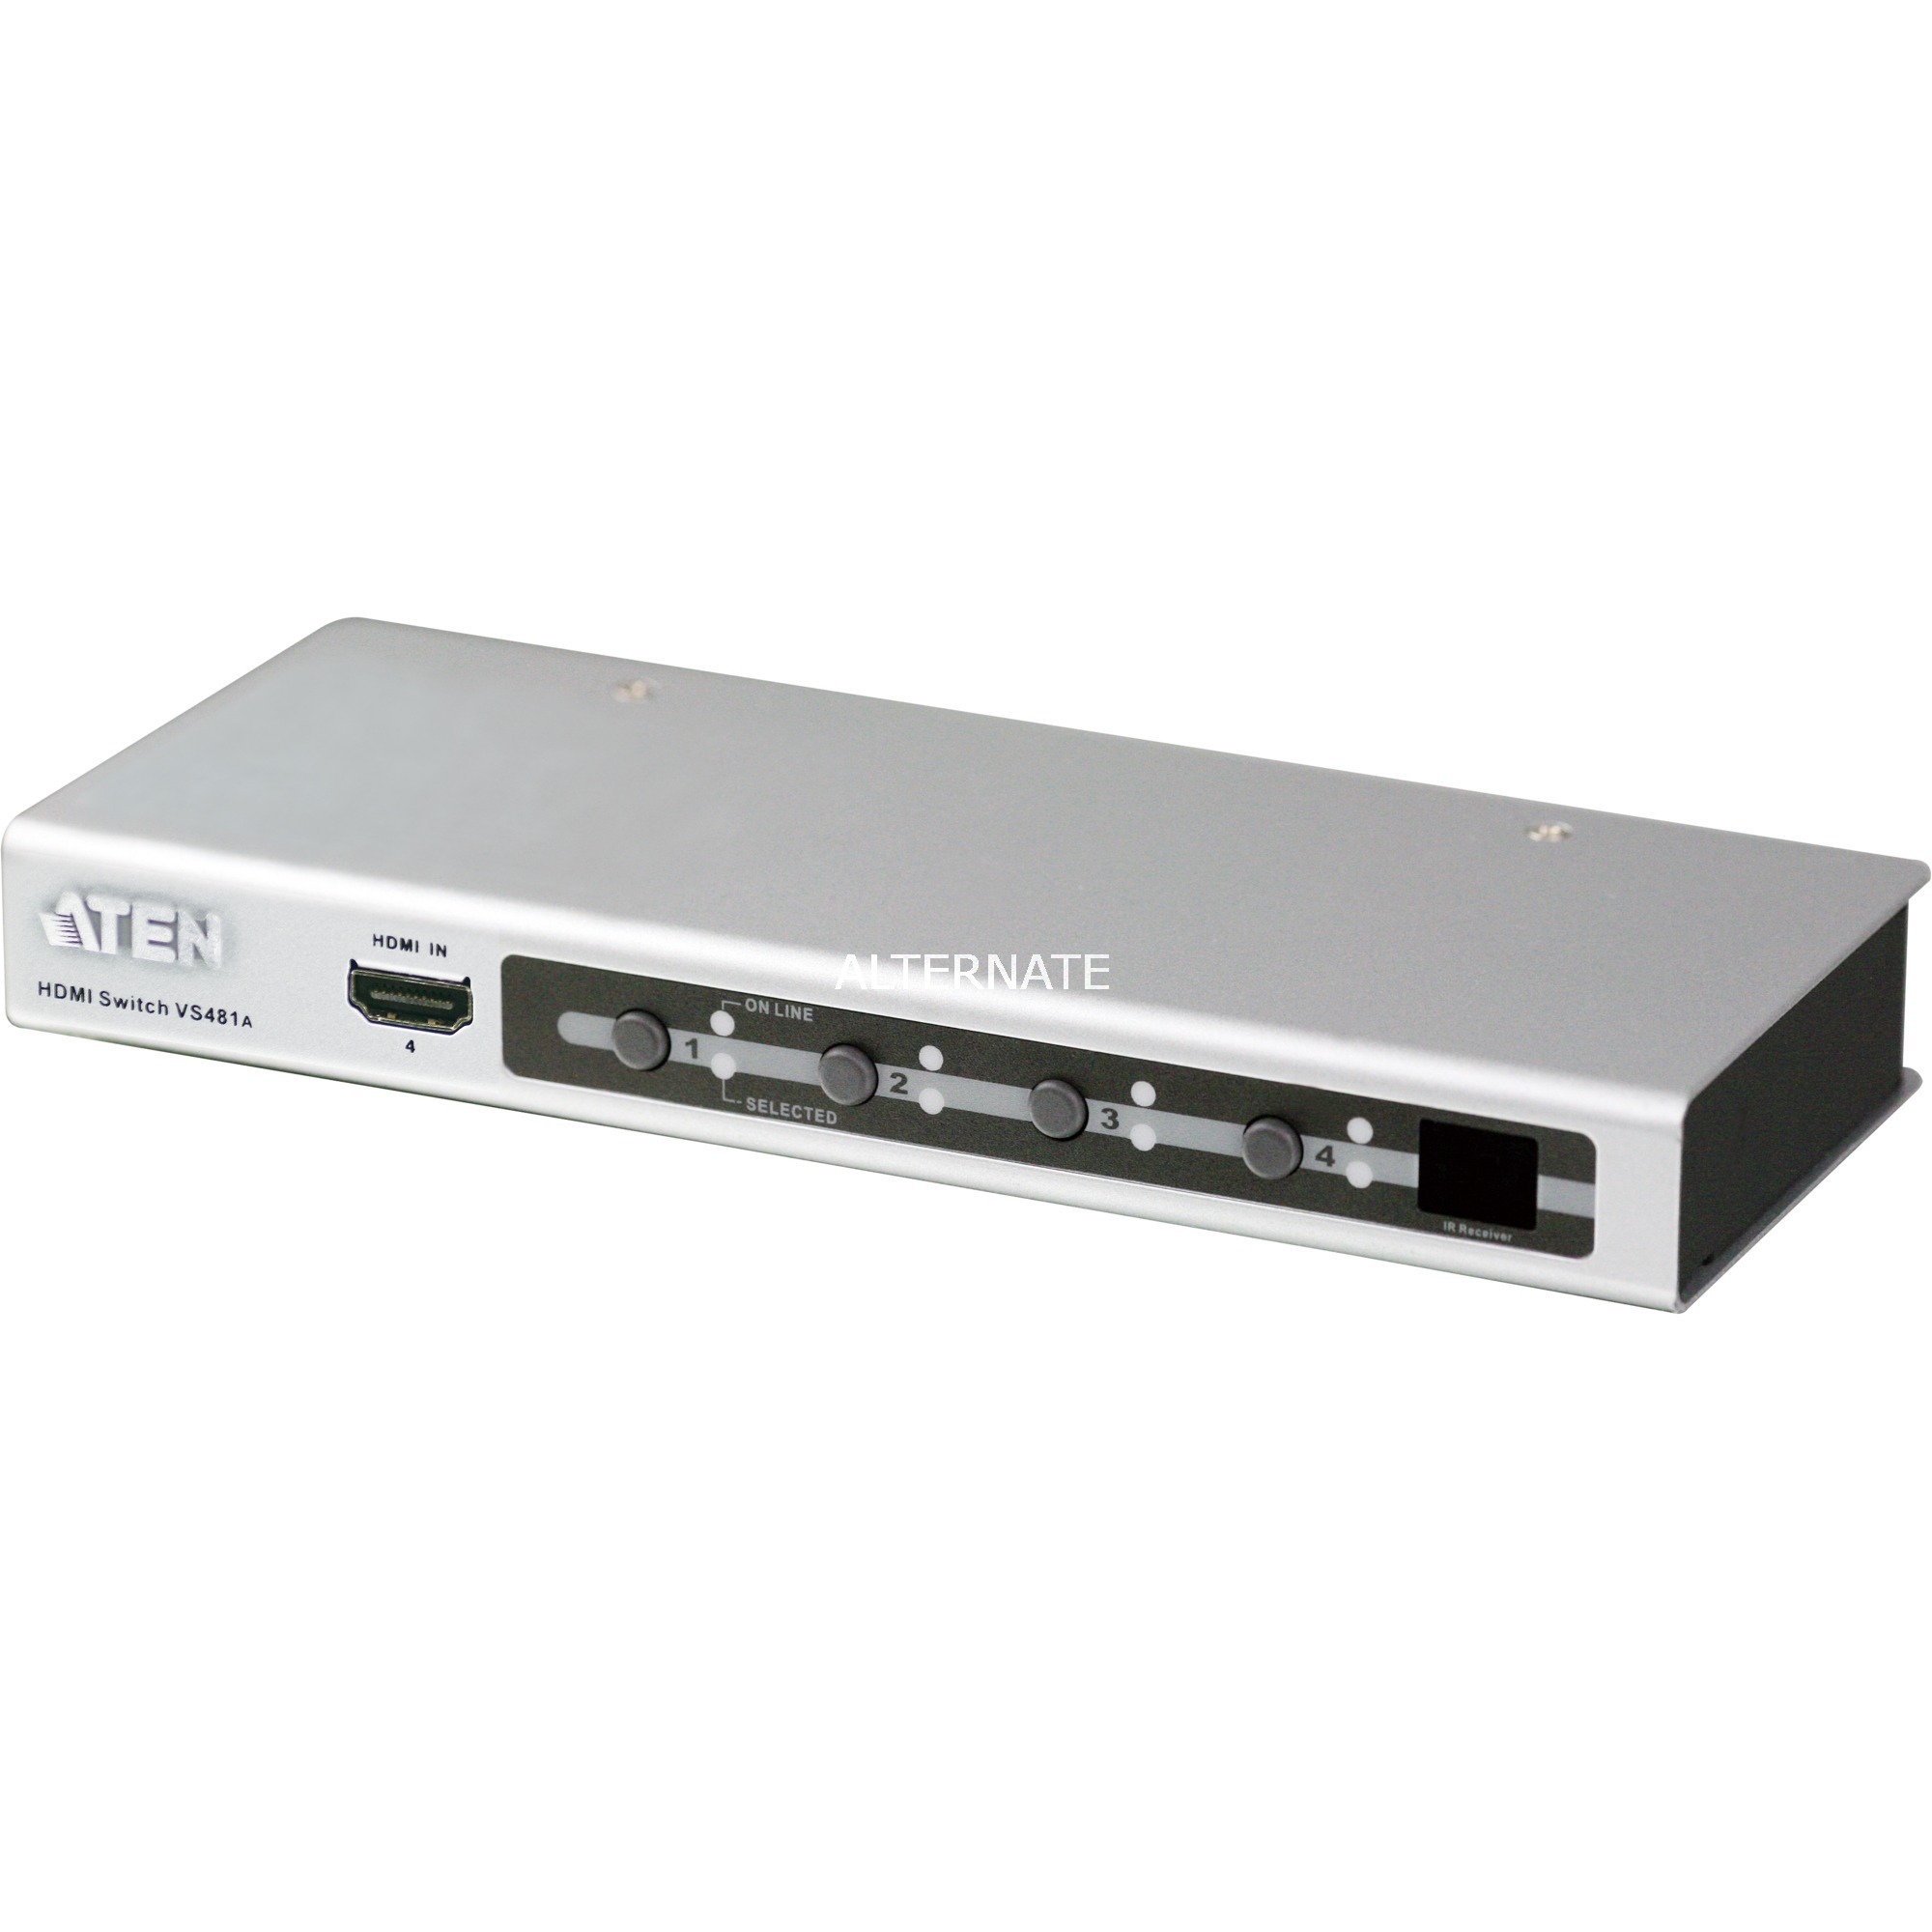 vs481a-at-g-hdmi-switch-4port-splittere-switche